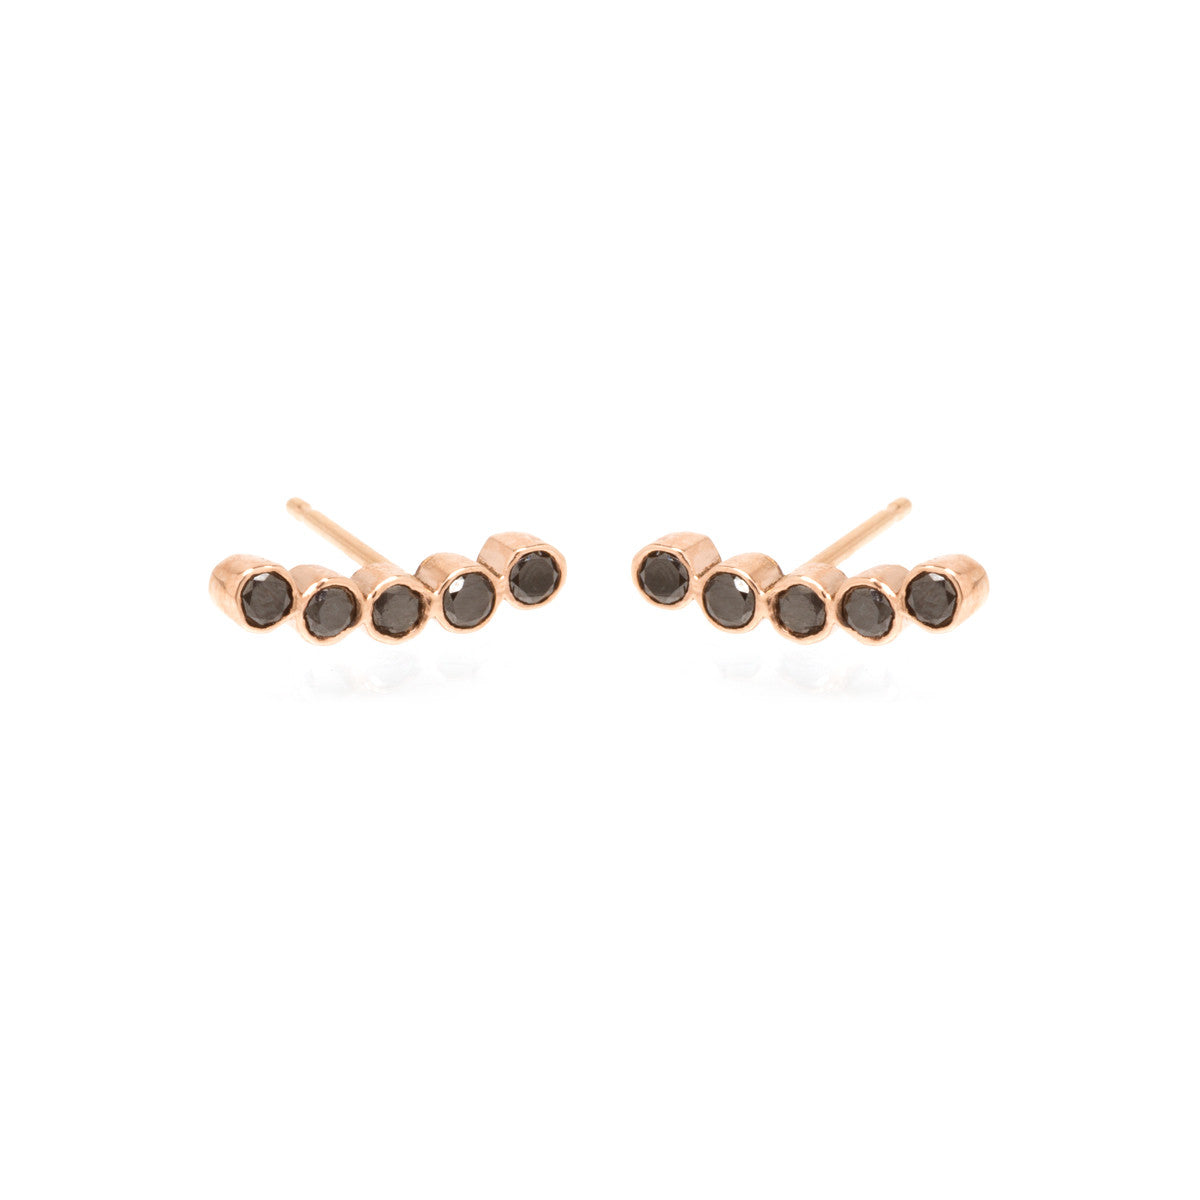 Zoë Chicco 14kt Rose Gold 5 Black Diamond Bezel Set Stud Earrings